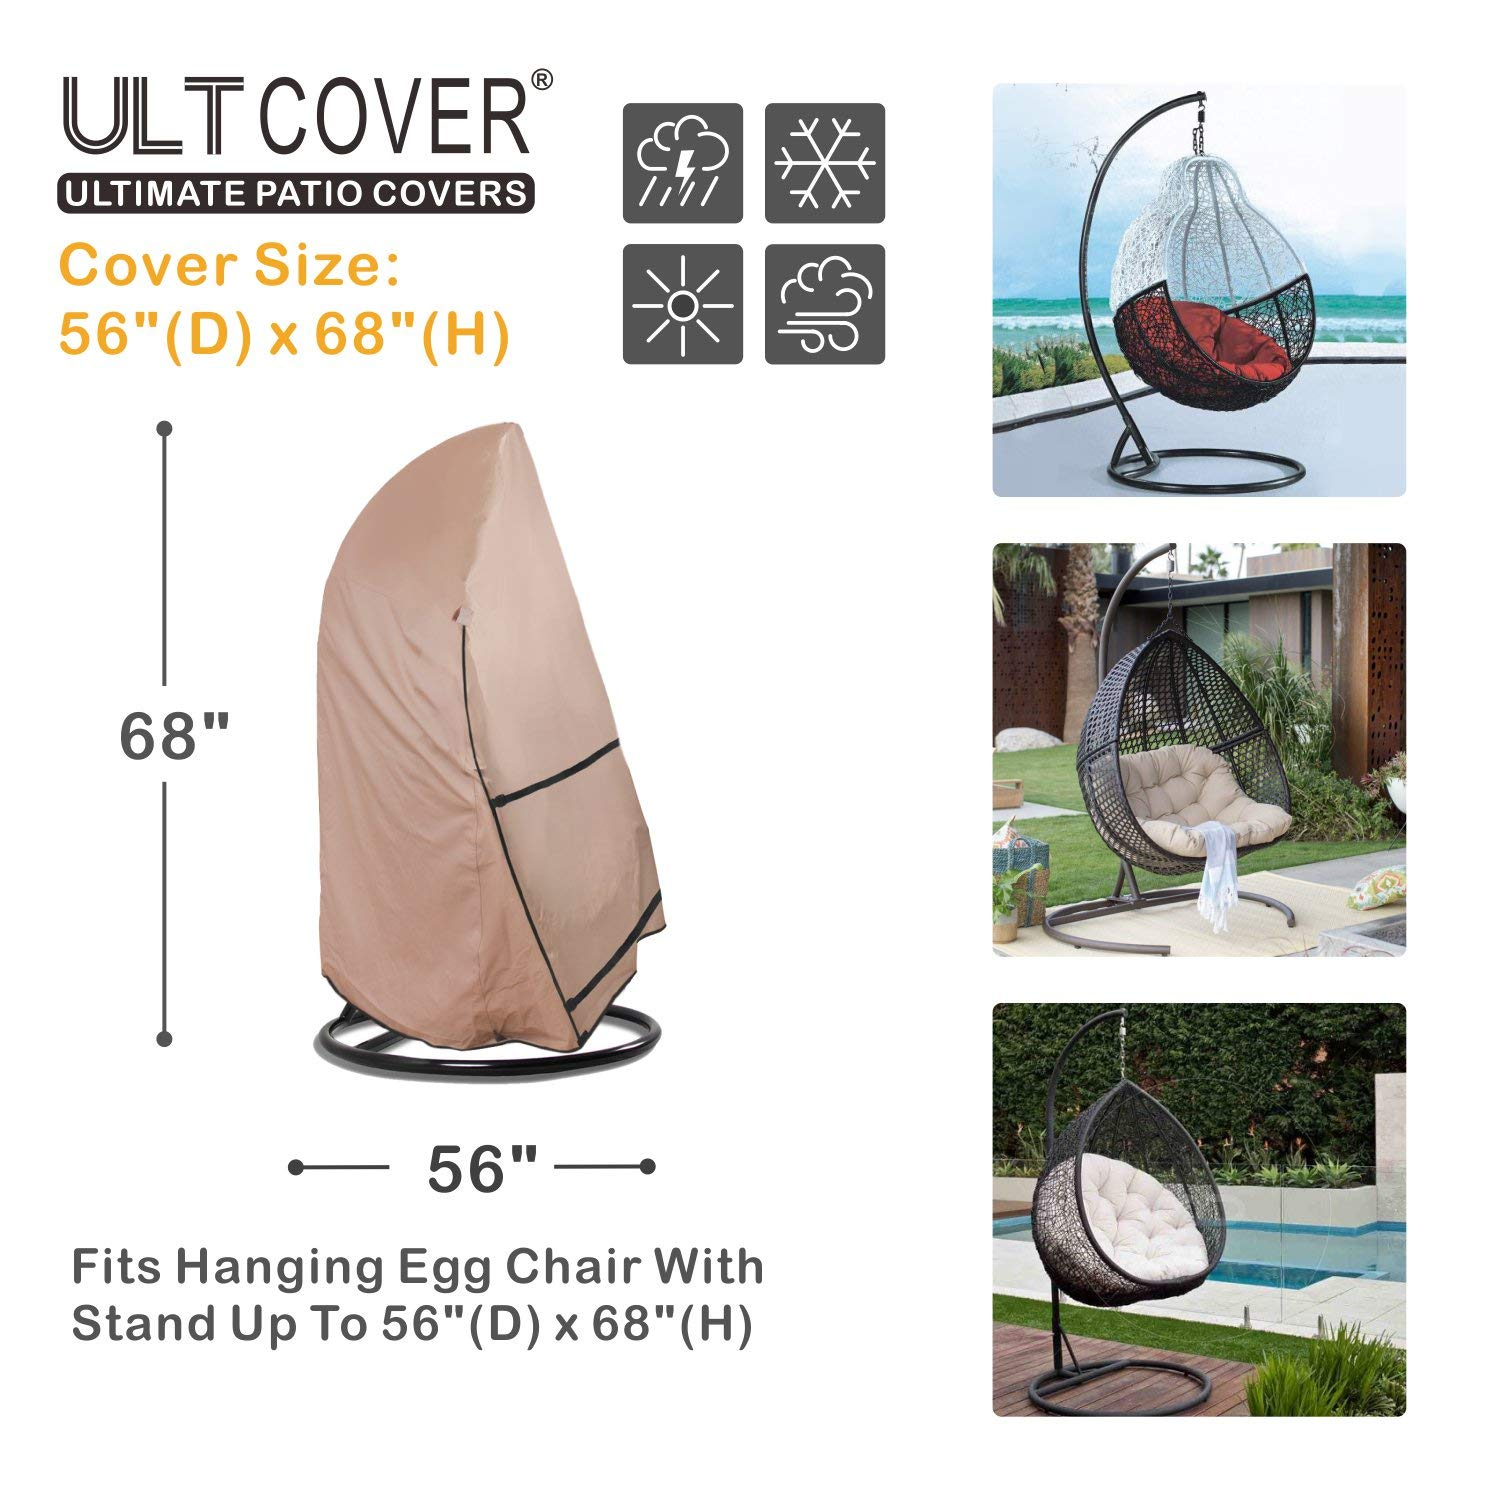 ULTCOVER Patio Hanging Egg Chair Cover - Waterproof Outdoor Single & 2 Person Swing Egg Chair with Stand Cover 56''(D) x 68''(H) by ULTCOVER (Image #2)